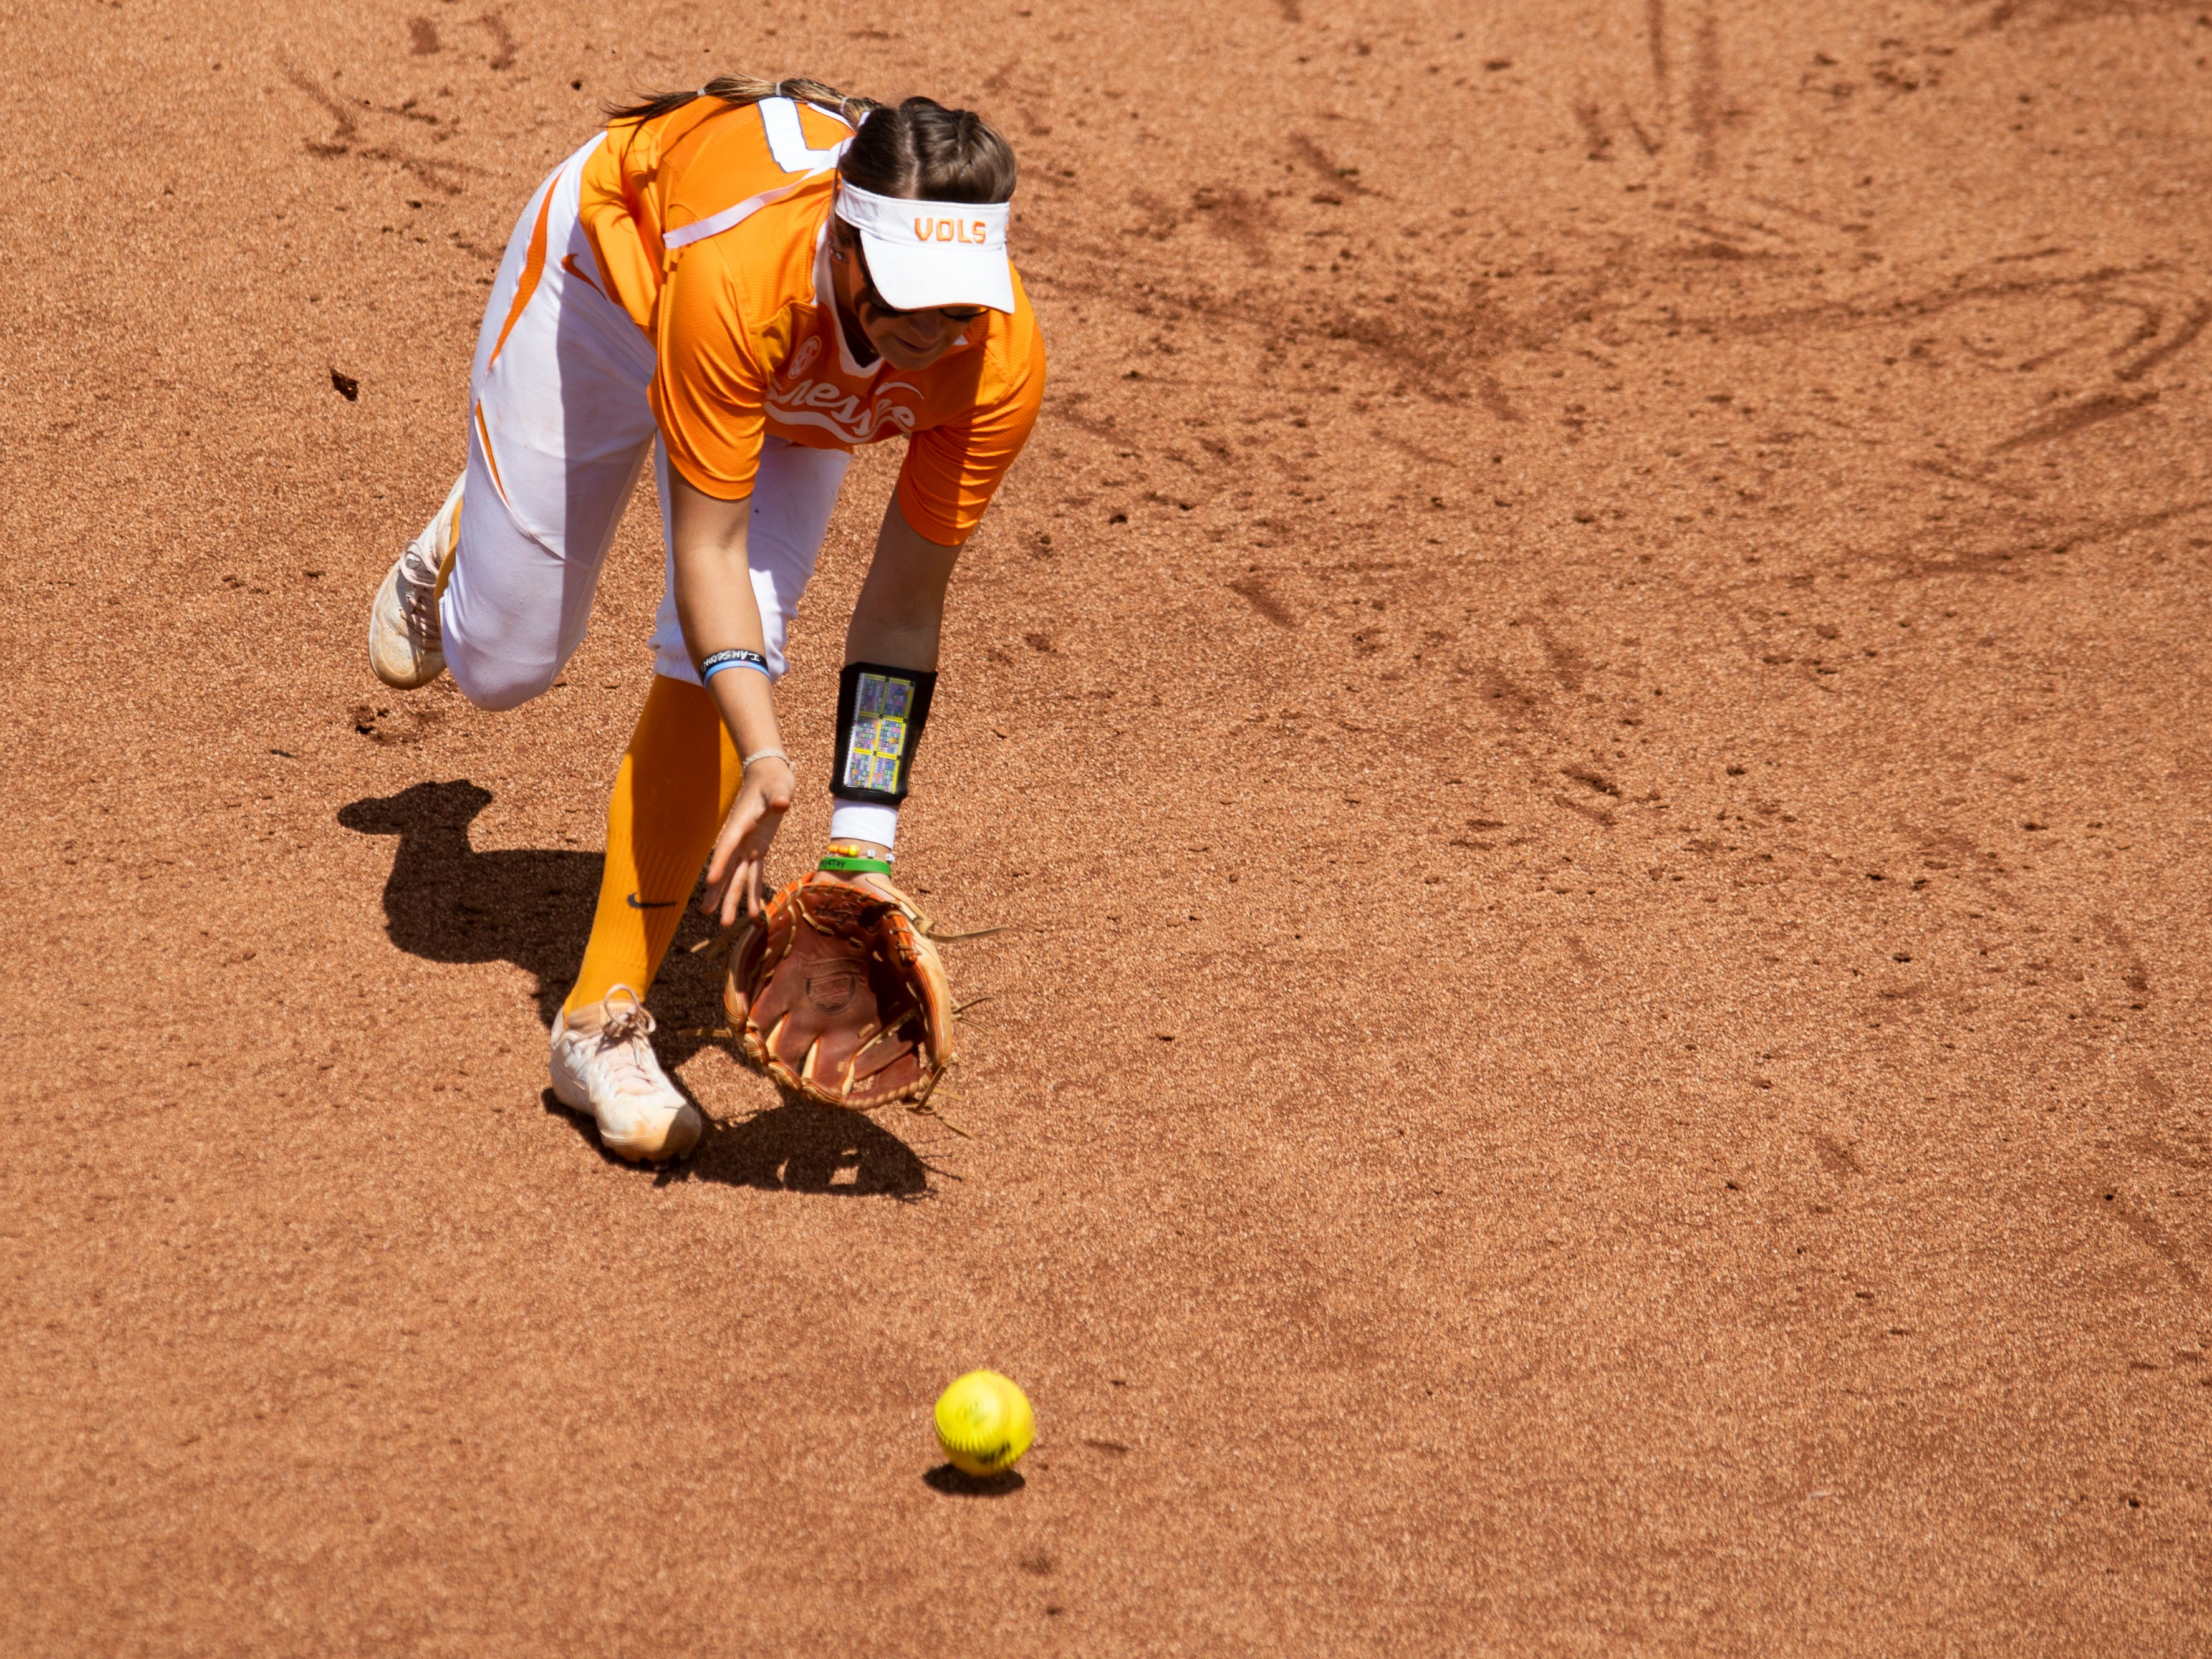 Tennessee's Gracie Osbron (77) gets in front of a ground ball in the game third game against Mississippi State at Sherri Parker Lee Stadium on Sunday, April 14, 2019.